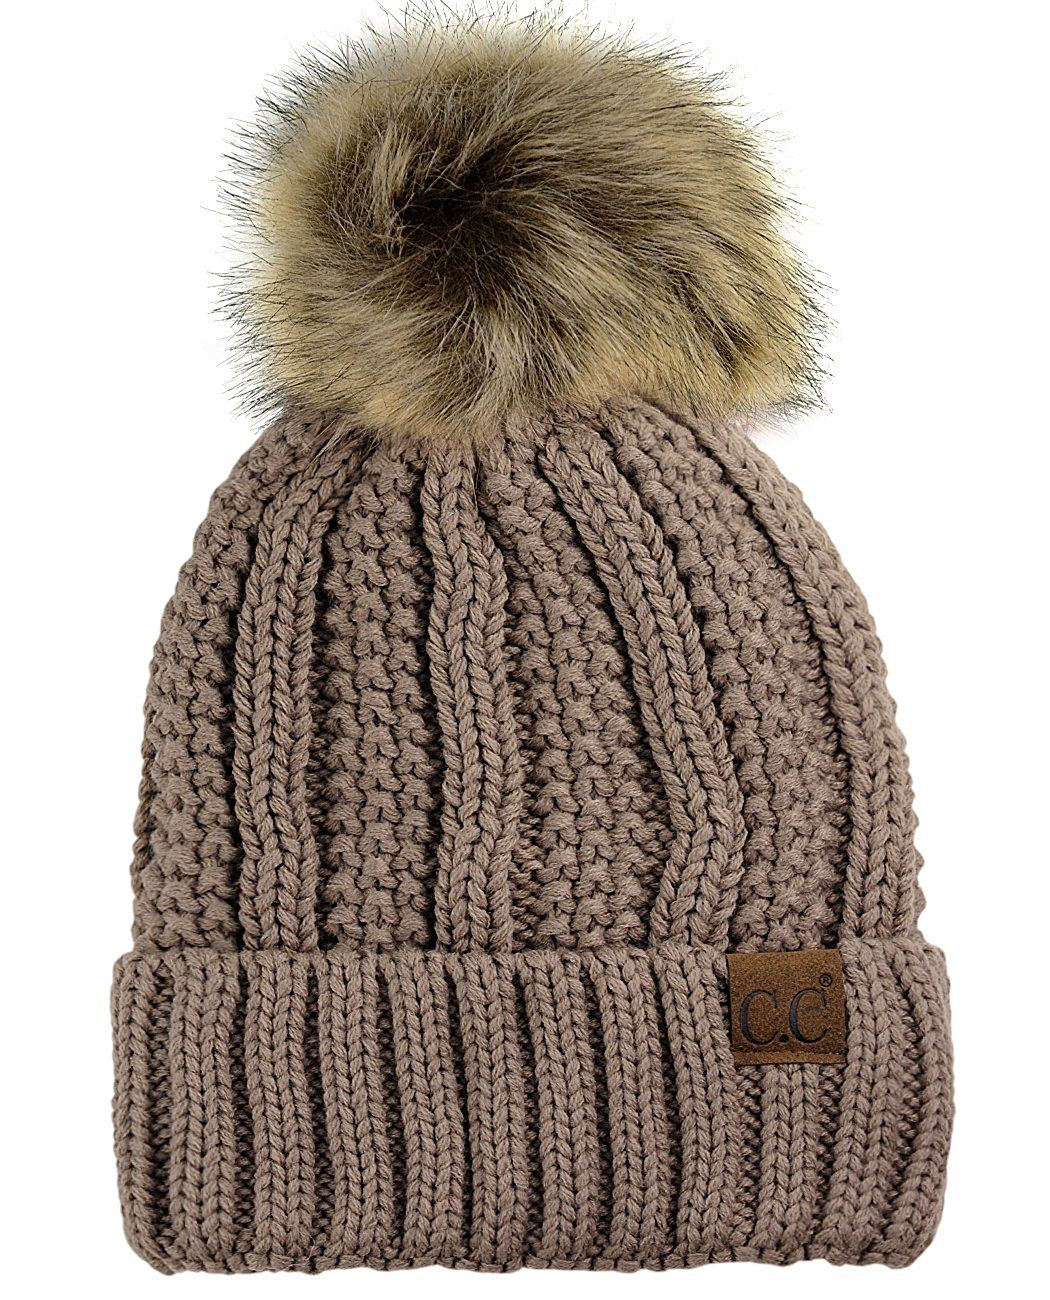 45edbe4cefe C.C Thick Cable Knit Faux Fuzzy Fur Pom Fleece Lined Skull Cap Cuff Beanie